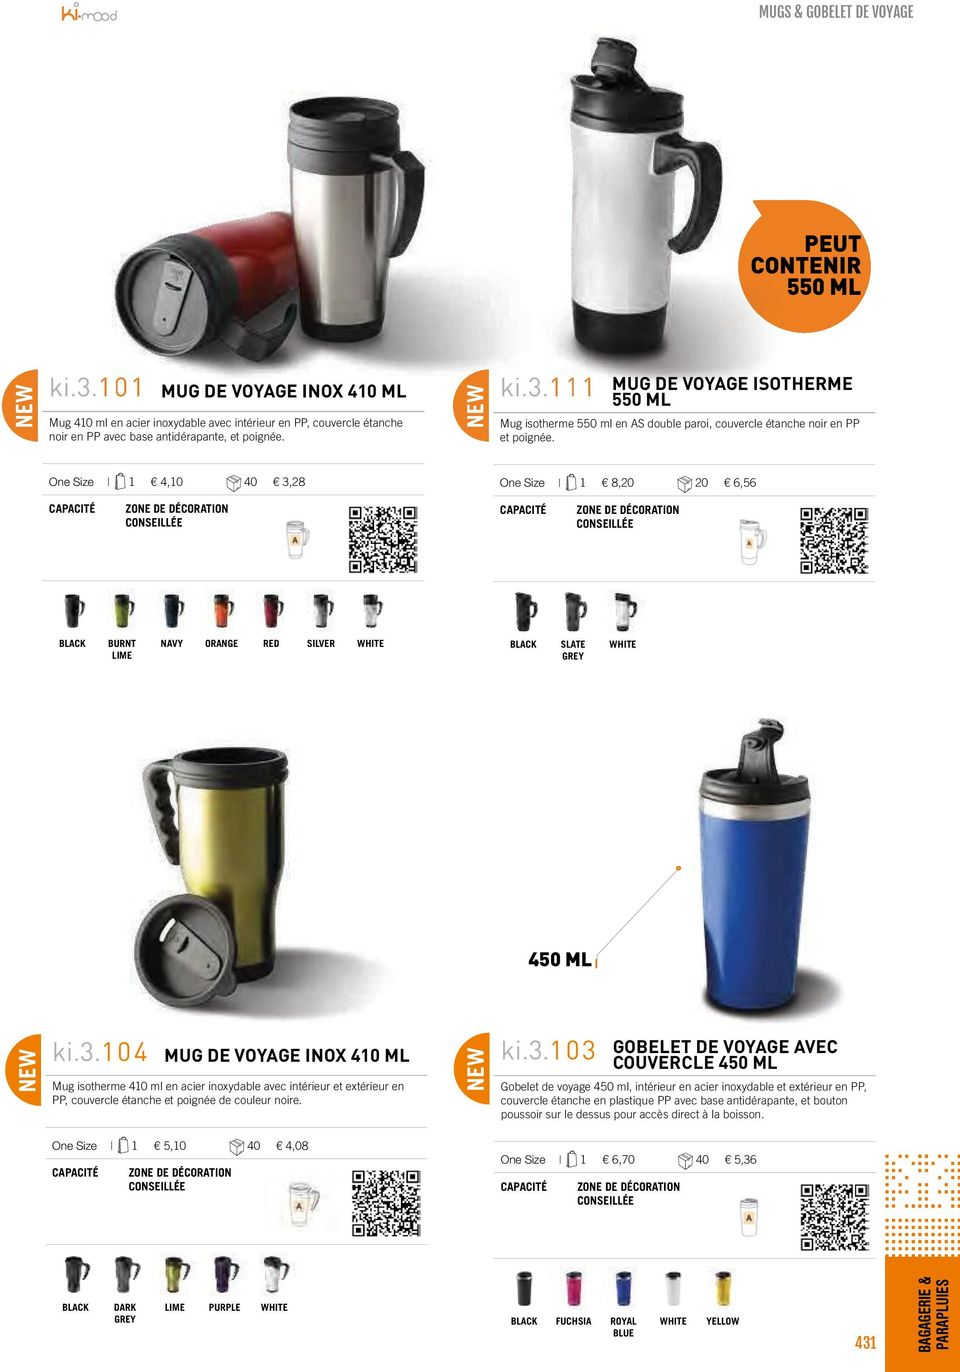 One Size 1 4,10 40 3,28 One Size 1 8,20 20 6,56 BURNT LIME ORANGE RED SILVER SLATE 450 ML ki.3.104 MUG DE VOYAGE INOX 410 ML Mug isotherme 410 ml en acier inoxydable avec intérieur et extérieur en PP, couvercle étanche et poignée de couleur noire.